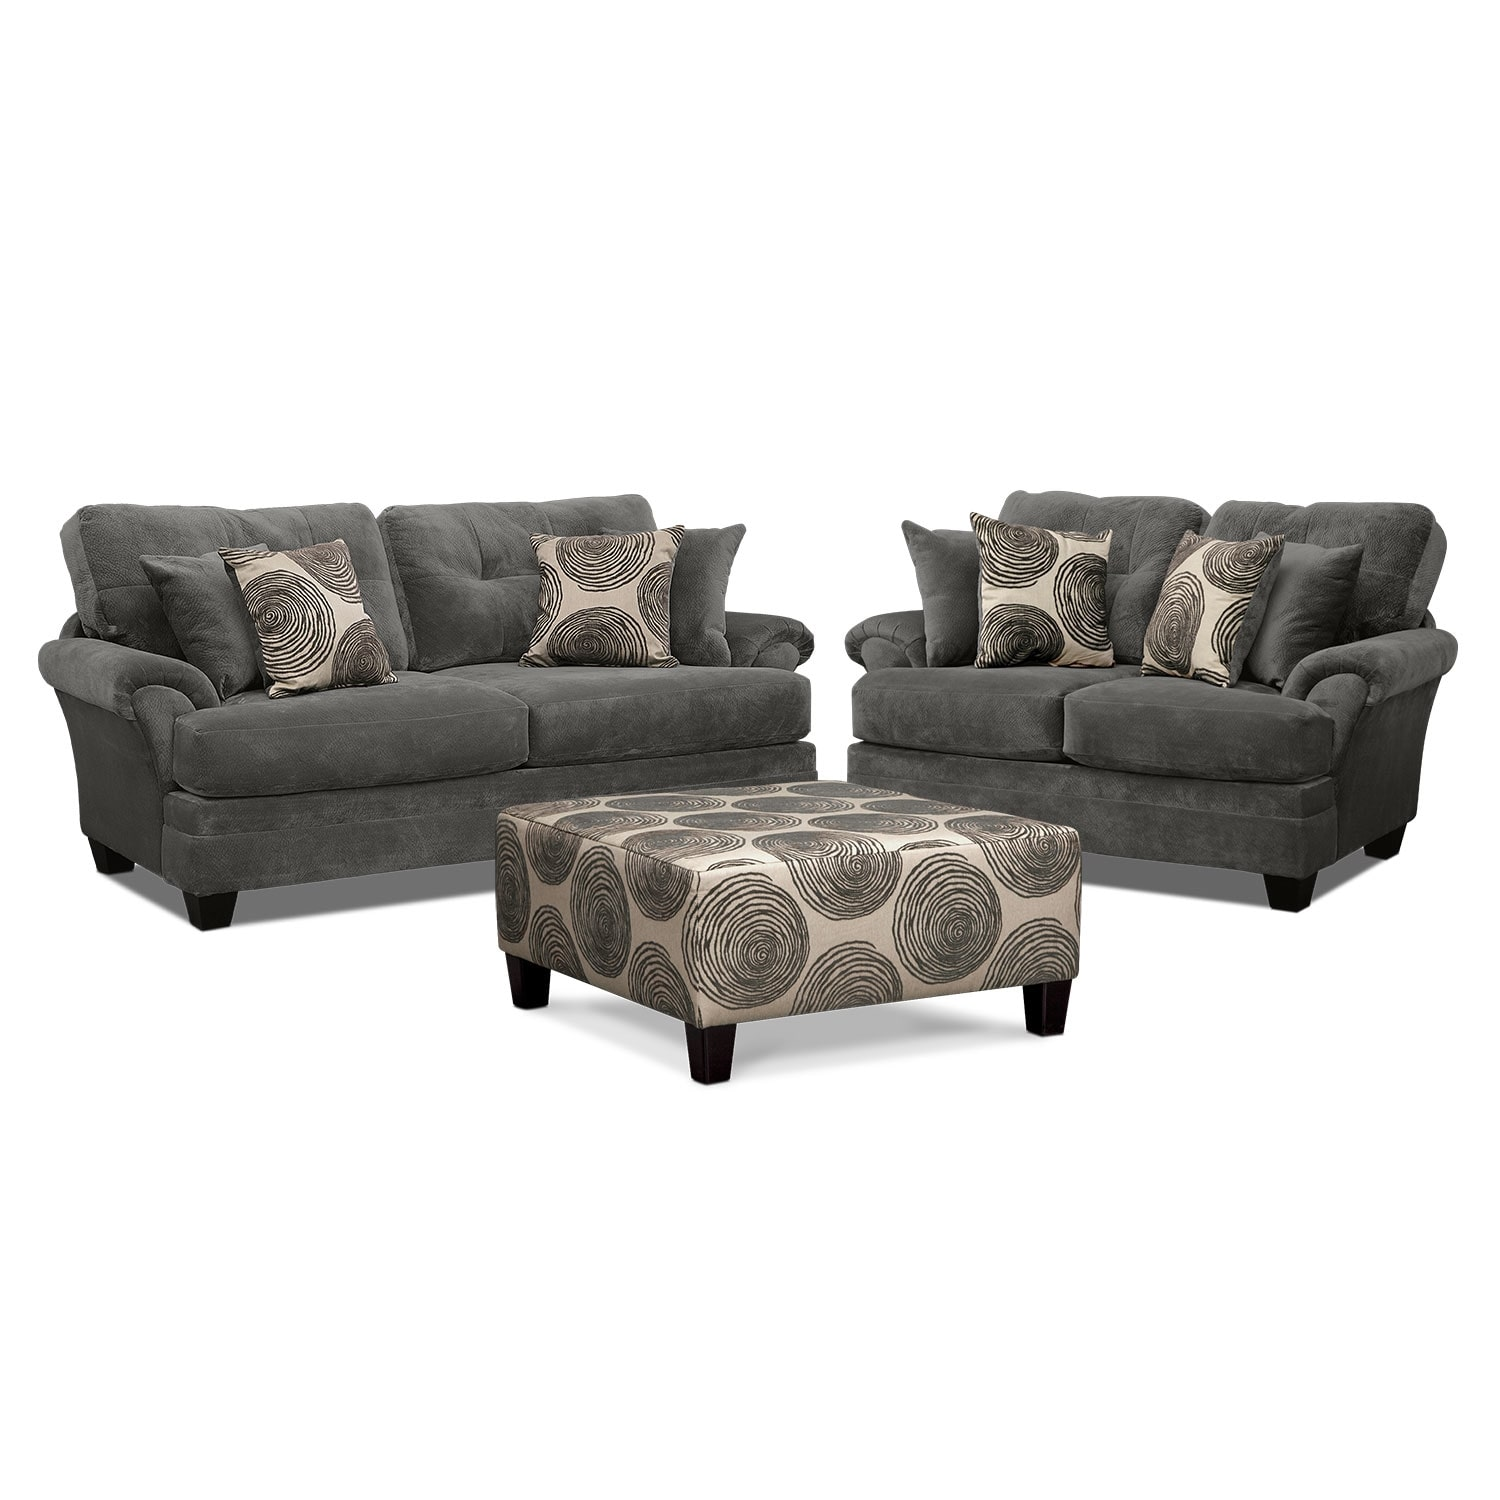 ... Loveseat and Cocktail Ottoman Set - Gray. Hover to zoom - Cordelle Sofa, Loveseat And Cocktail Ottoman Set - Gray Value